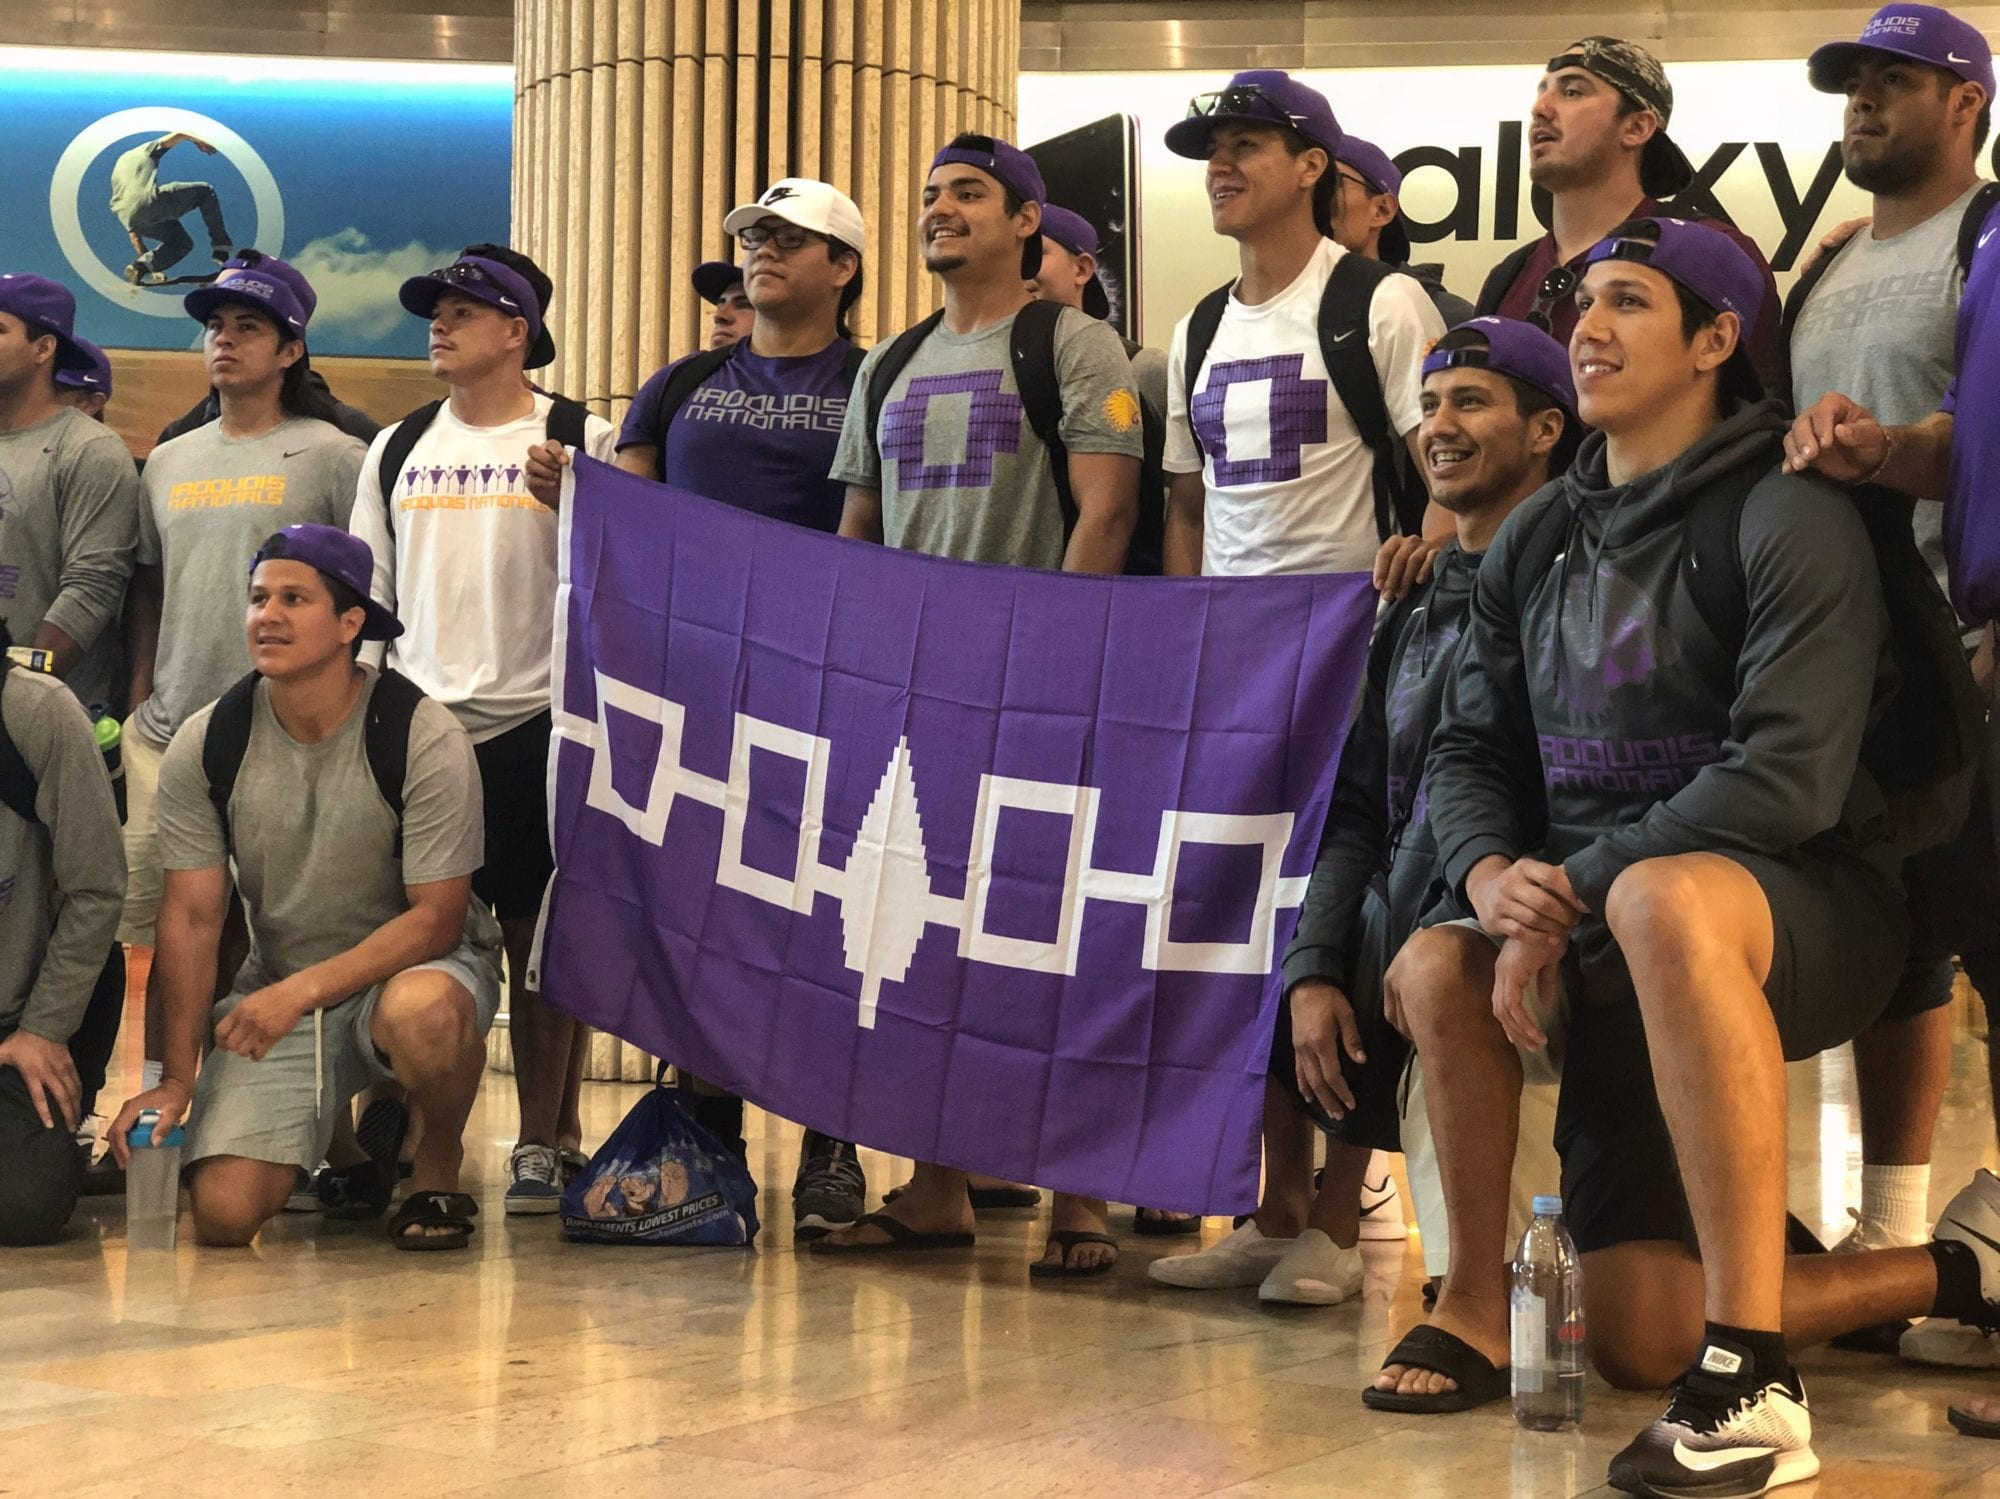 haudenosaunee Iroquois Nationals Airport